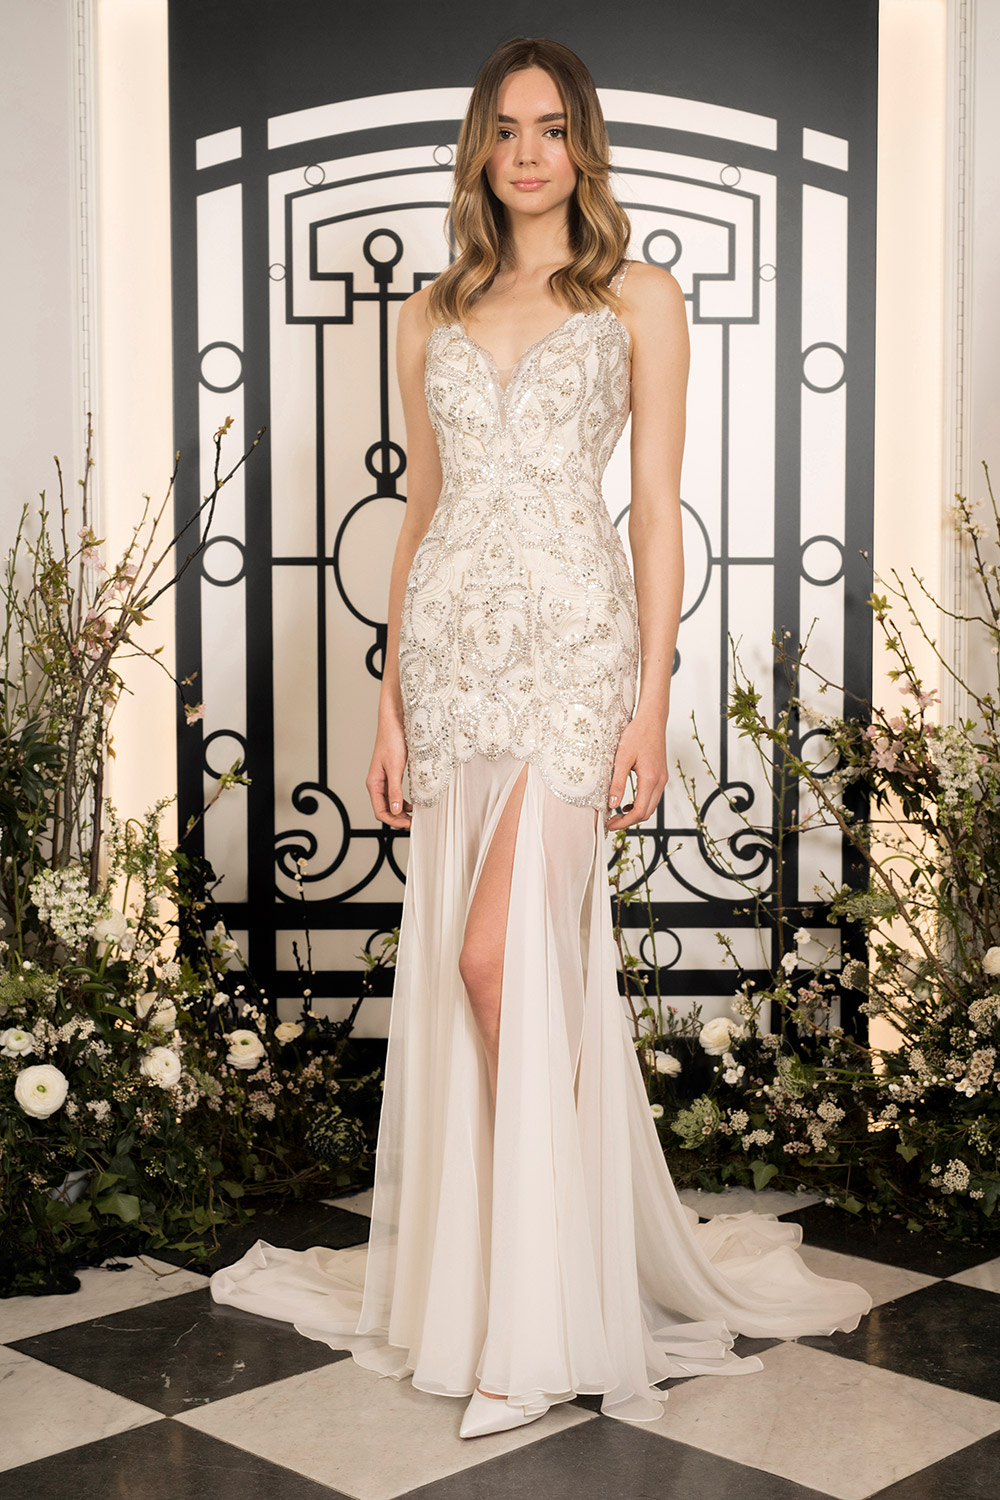 Vida - Jenny Packham 2020 Bridal Collection. www.theweddingnotebook.com